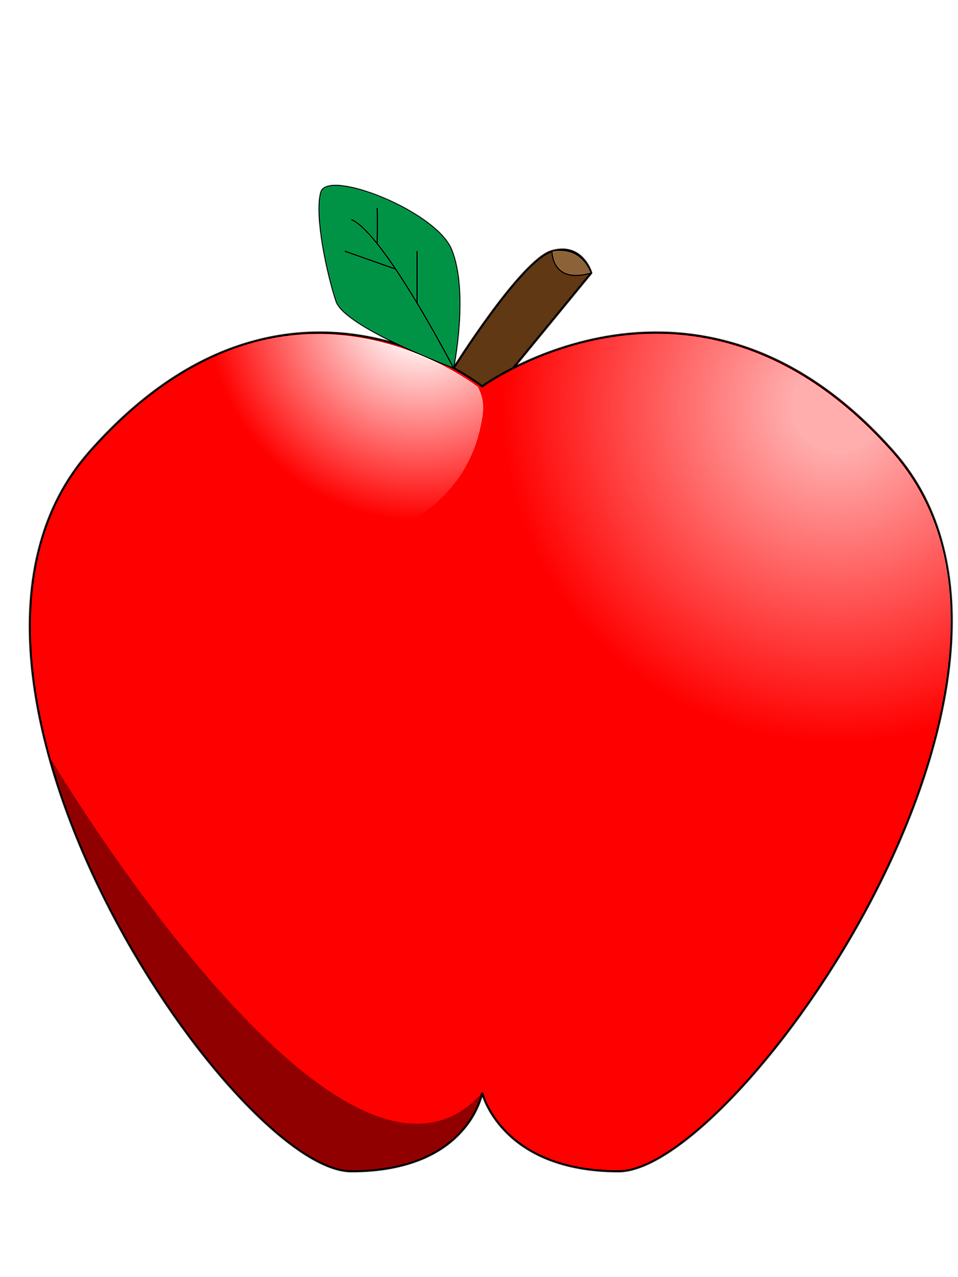 Apples border png transparent background. Apple free stock photo